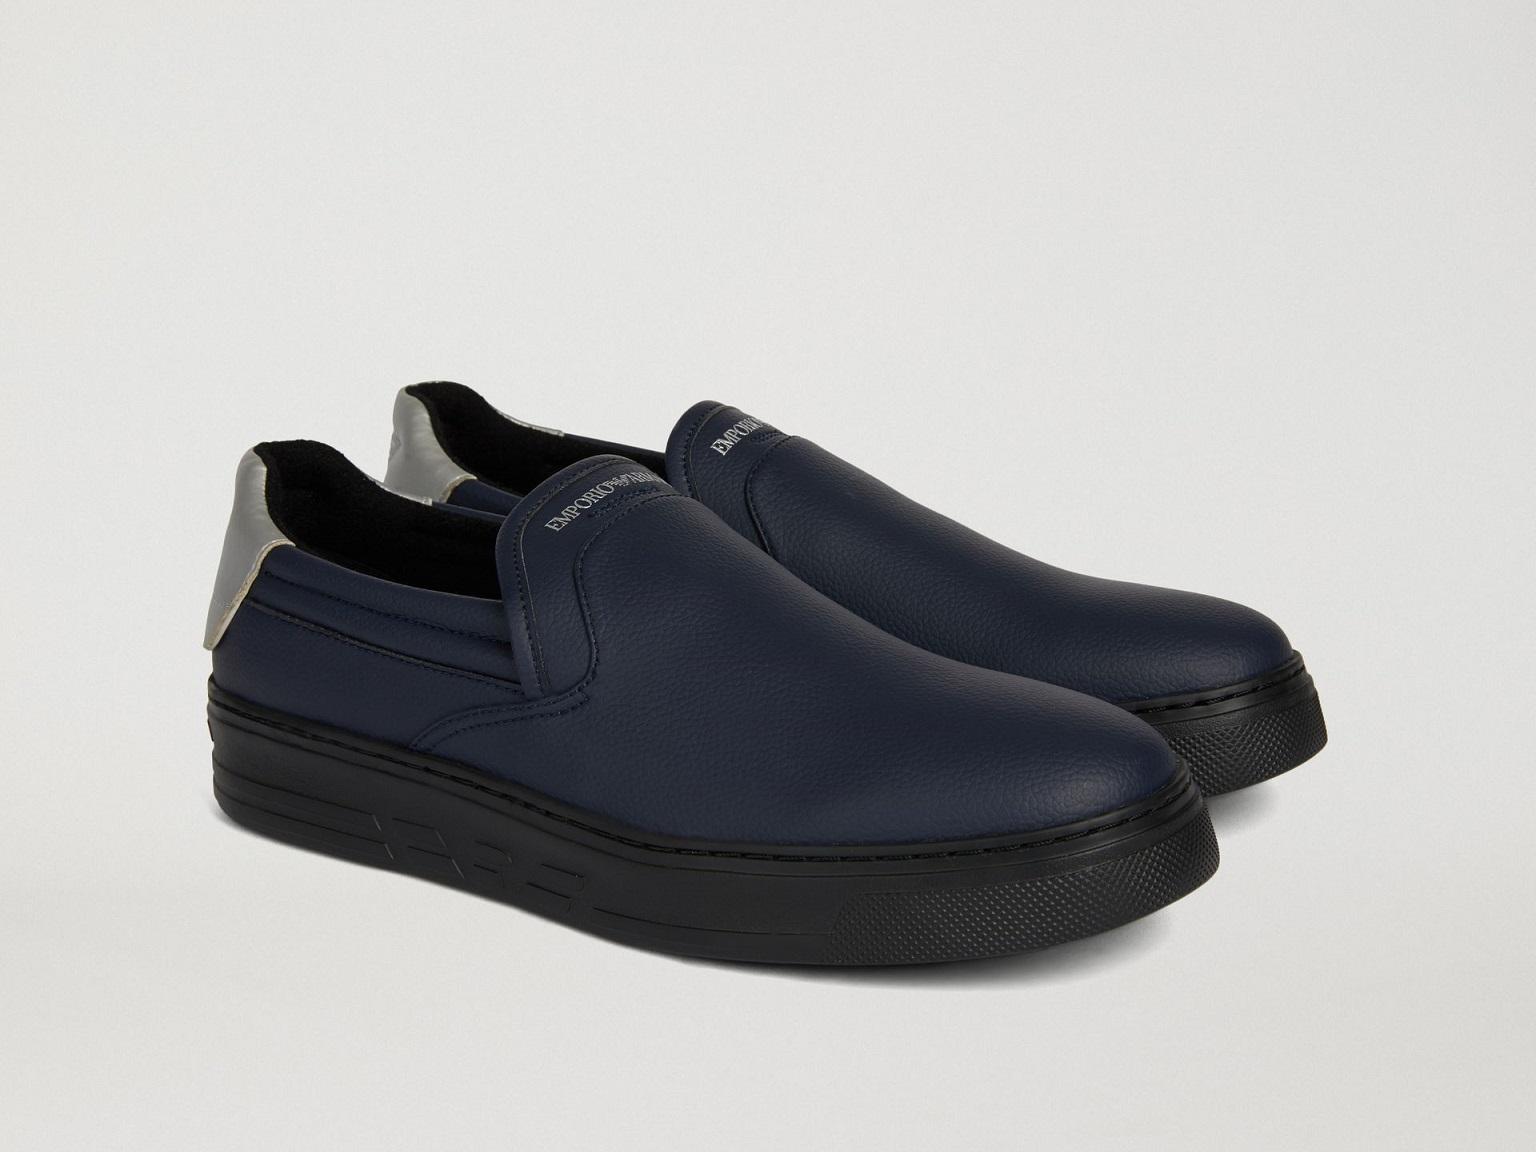 2ae4014caa49 Chaussures   tennis pour Homme   Emporio Armani